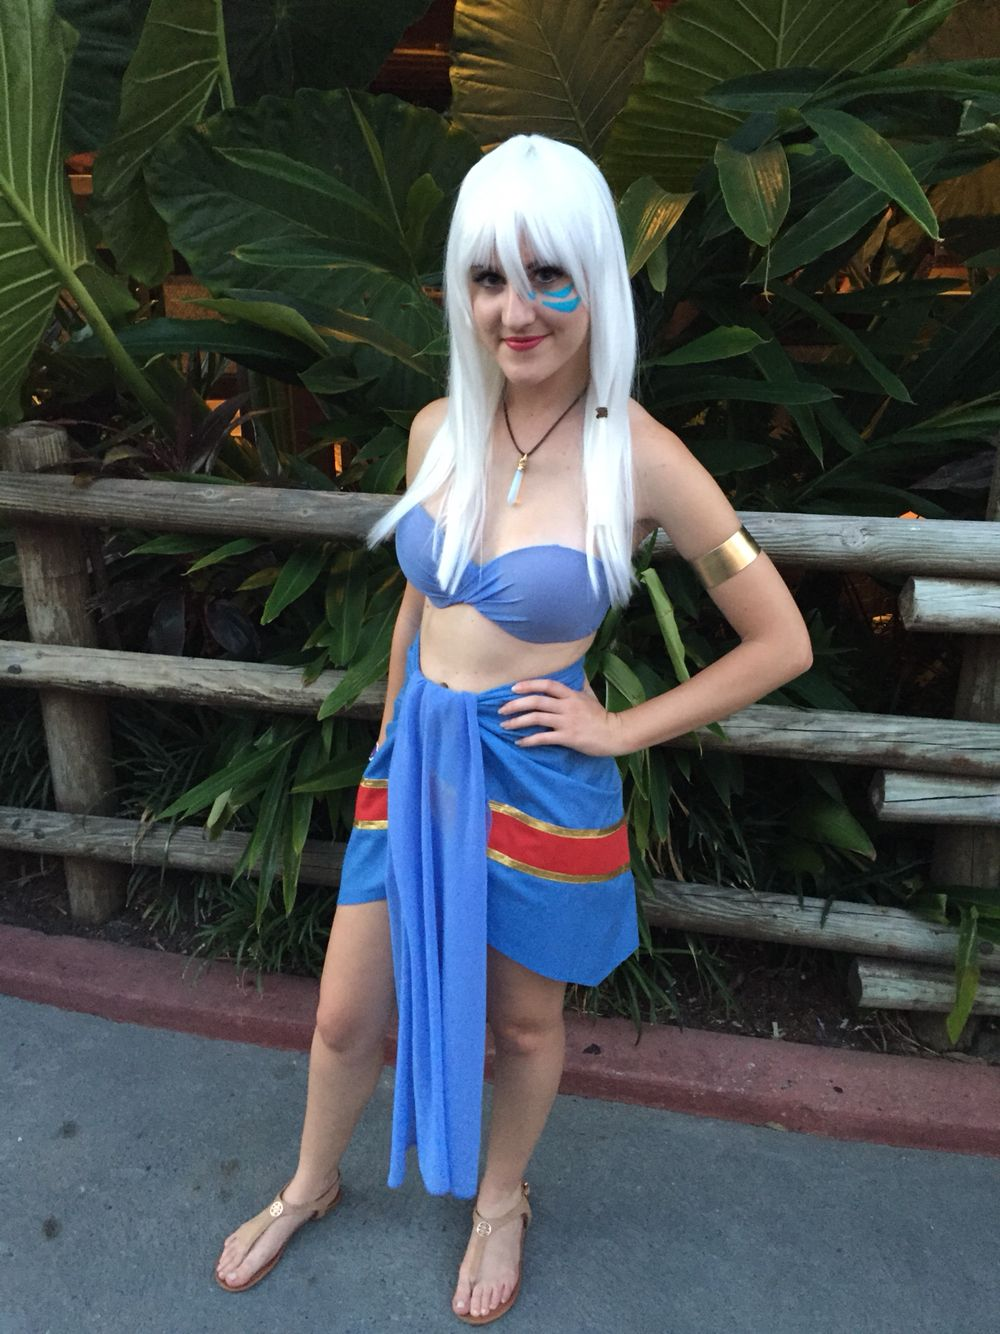 cb20e67139d Disney's Princess Kida from Atlantis costume! | It's All About Me in ...